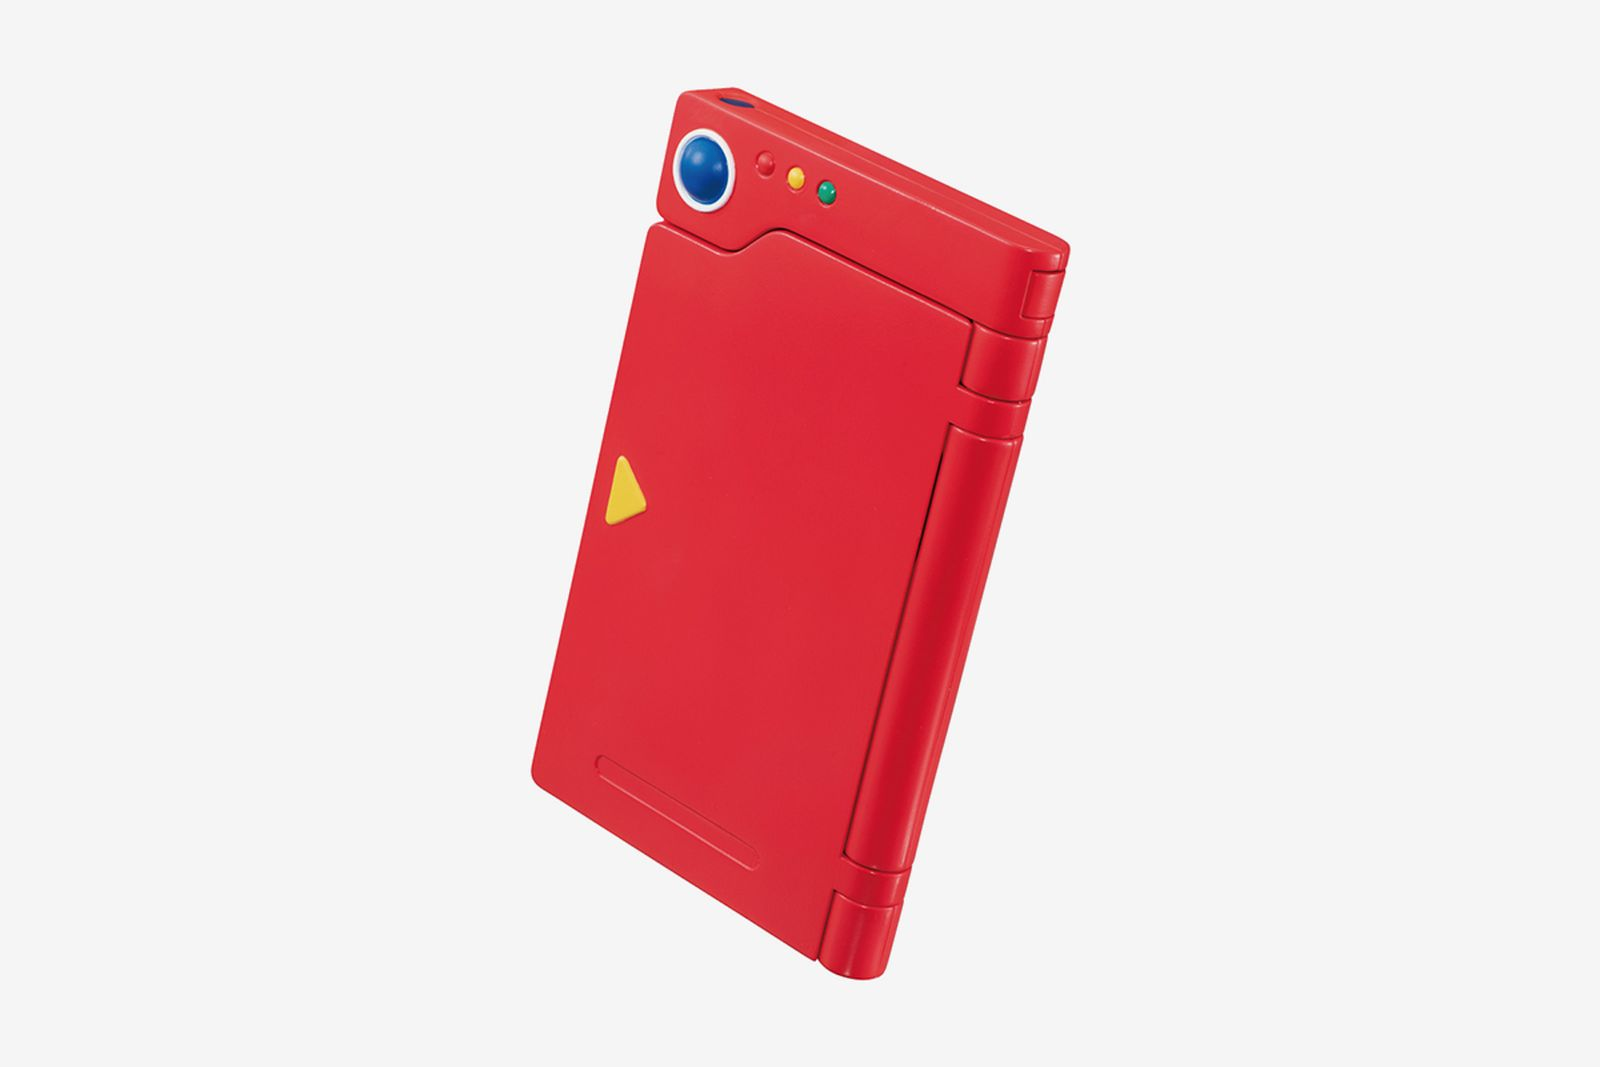 Premium Bandai Pokémon Pokedex iPhone case red